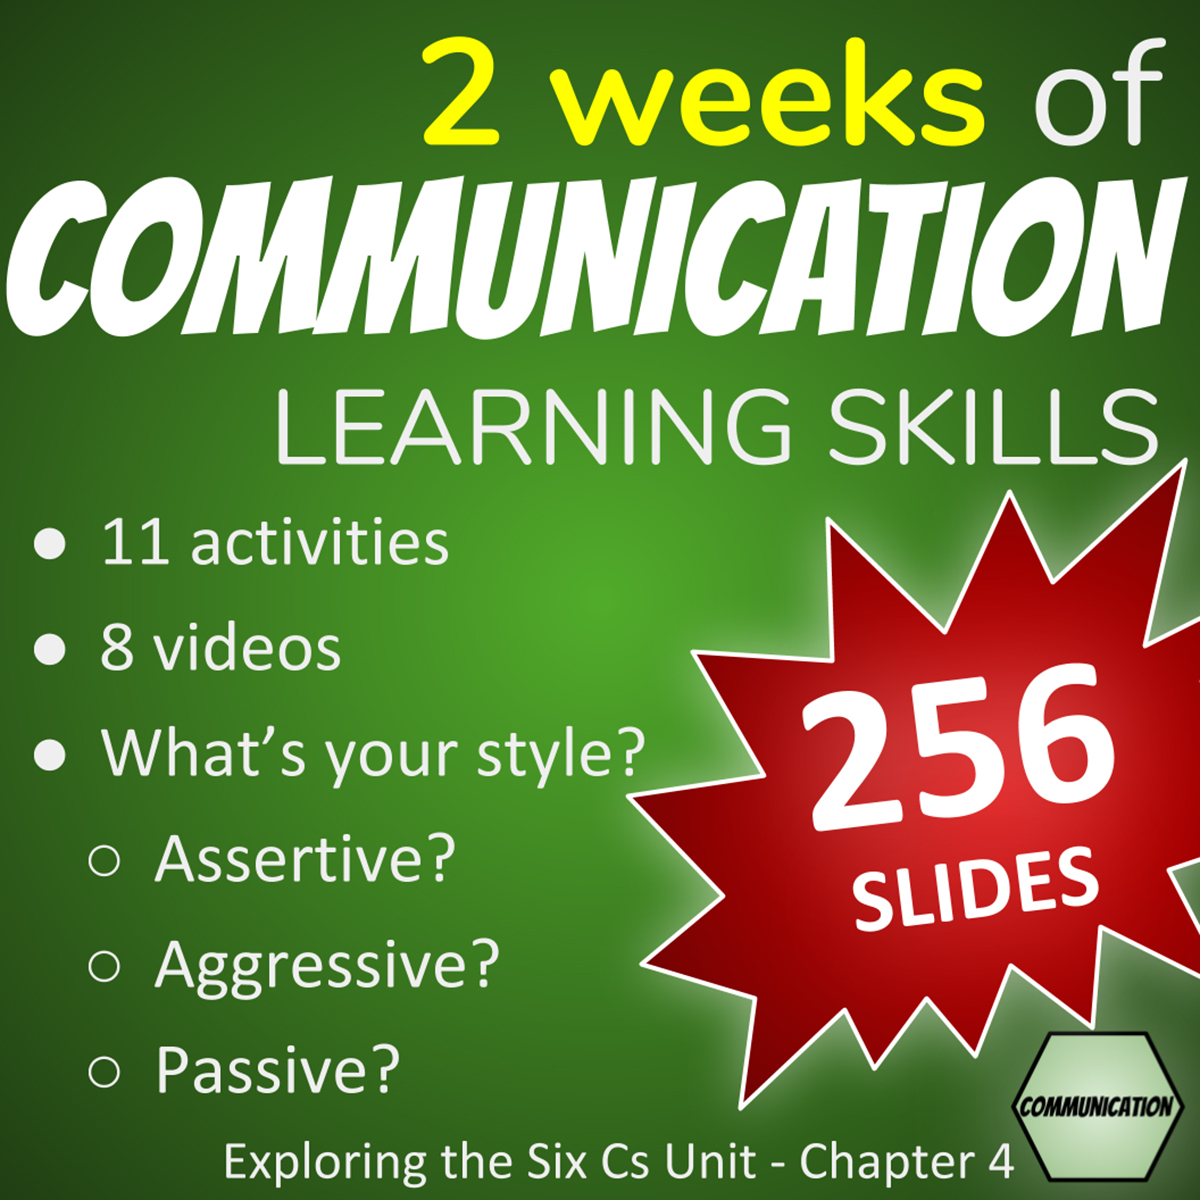 Effective Communication Lesson Plans - 2 weeks of Communication Learning Skills: 11 activities, 8 videos, What's your style - assertive, aggressive, passive, 256 SLIDES